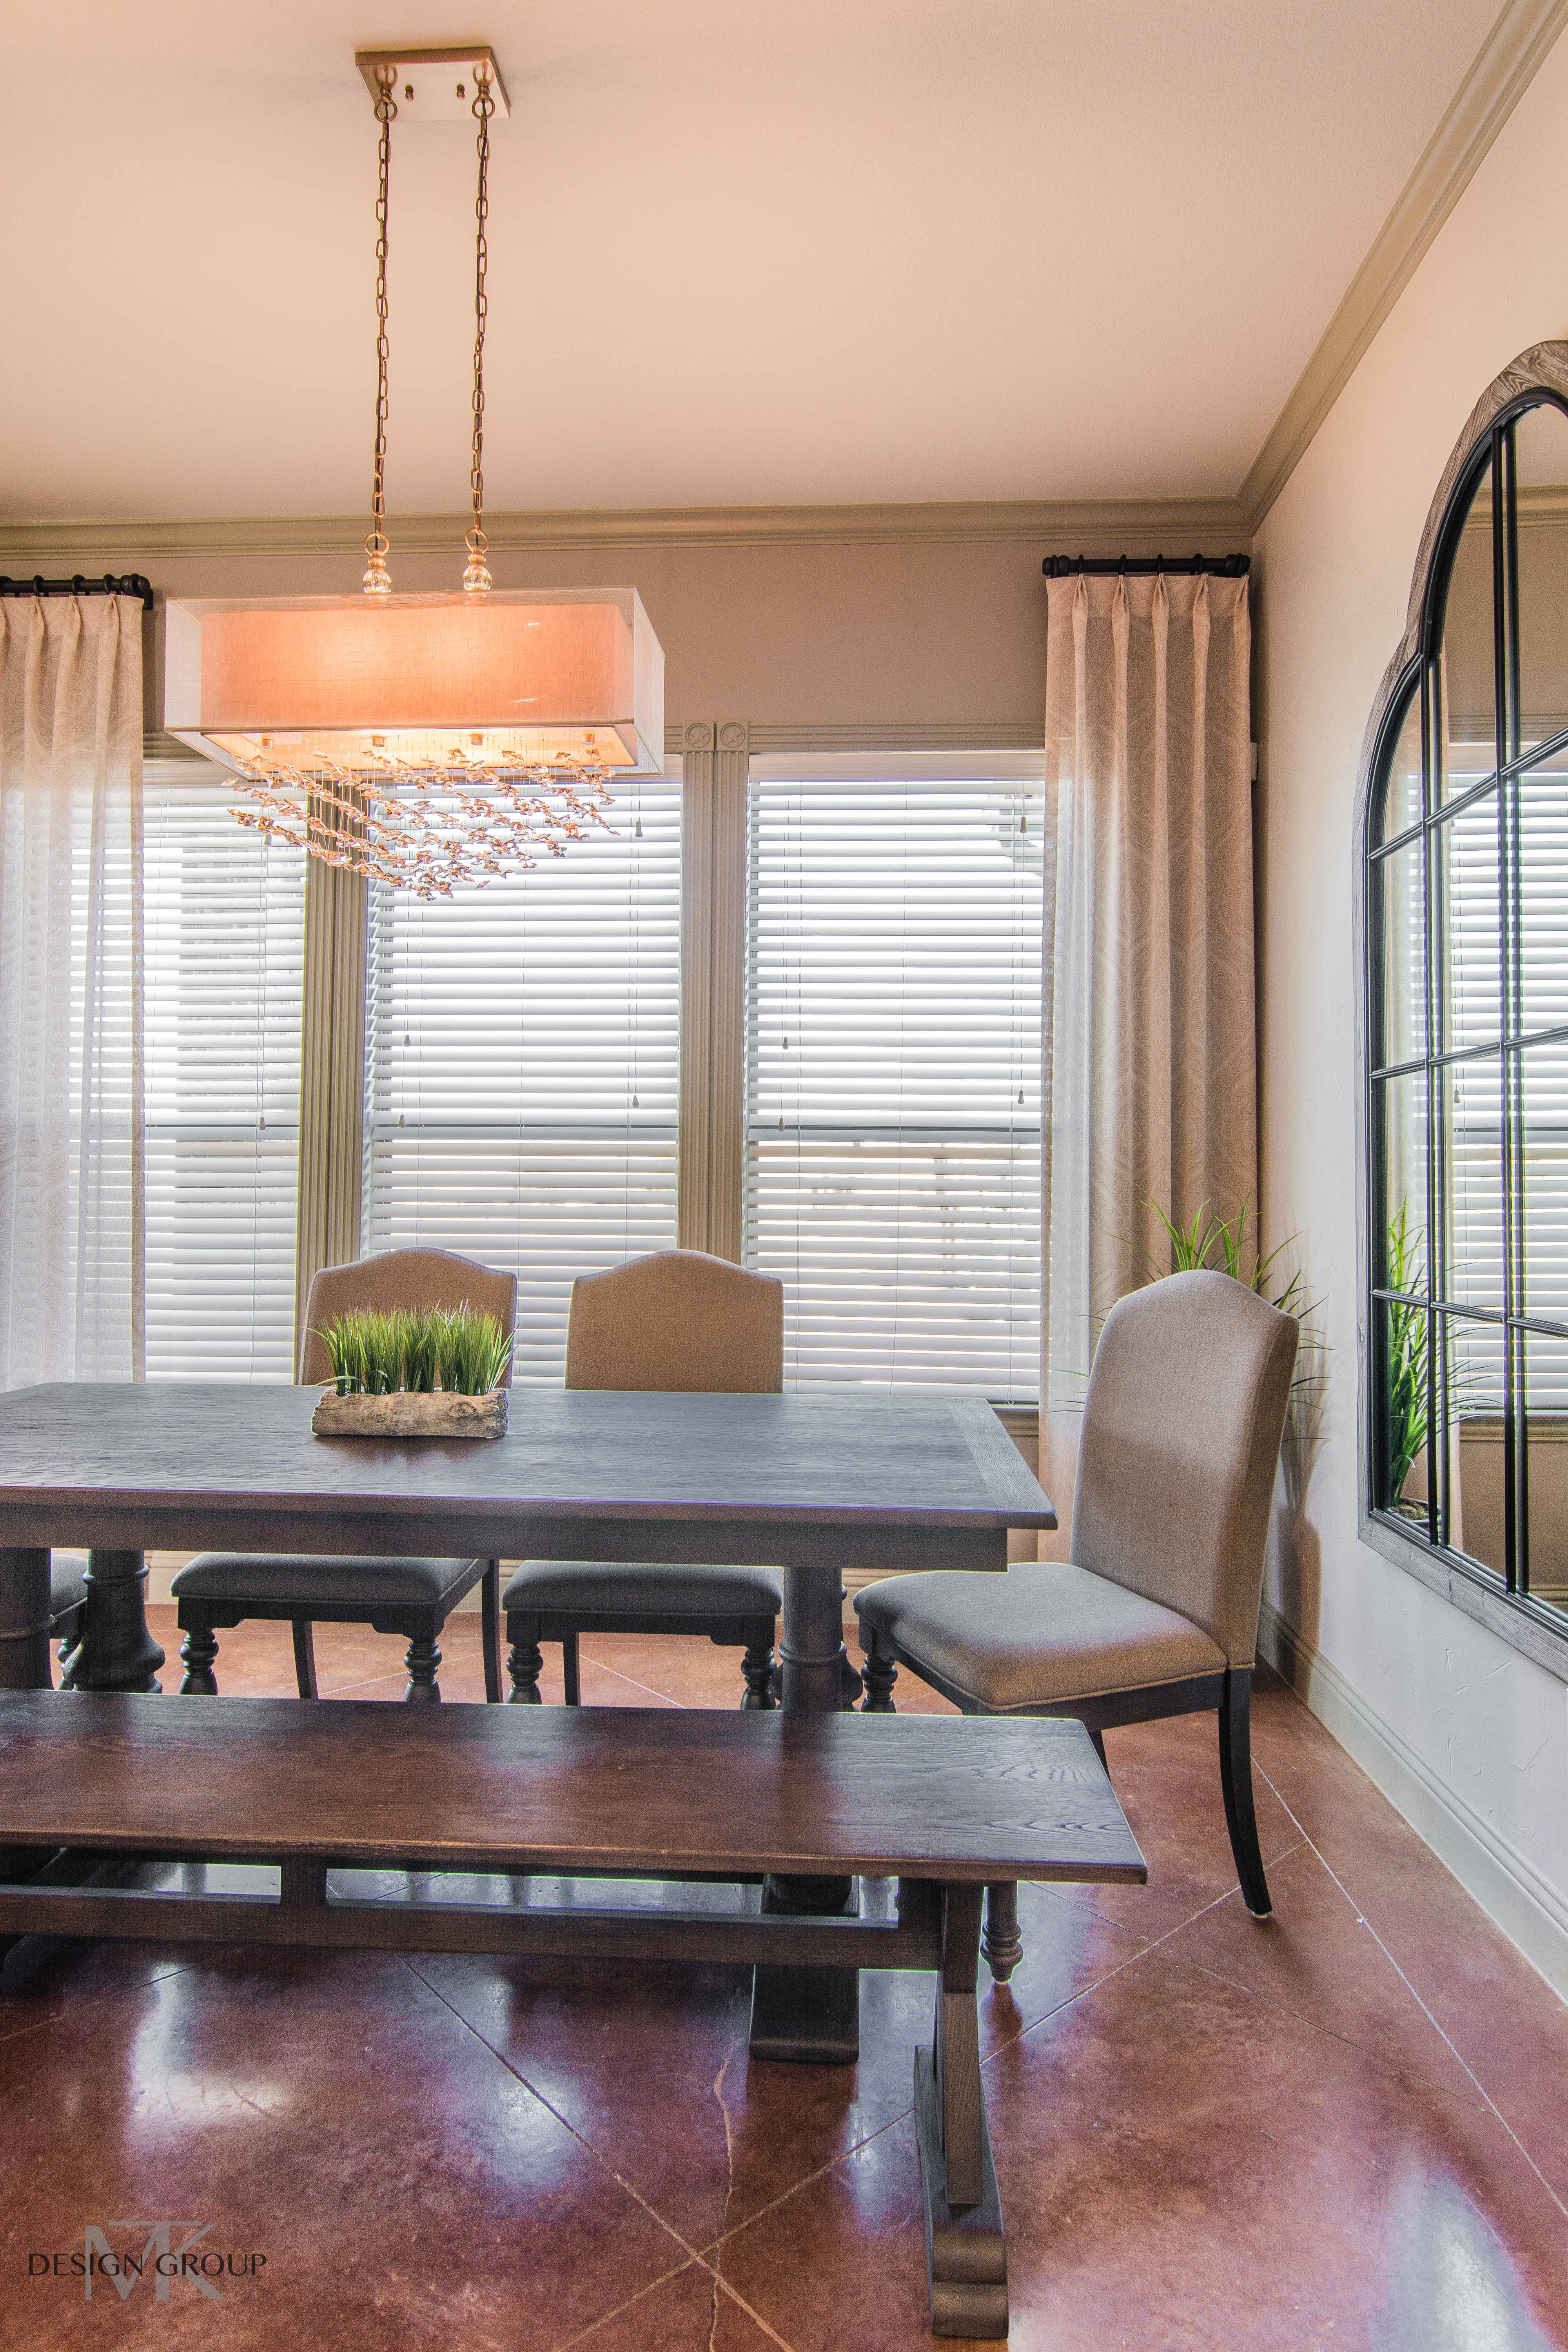 Midlothian Transitional Home Design, MTK Design Group, DFW Interior Decorating Services (20 of 39)